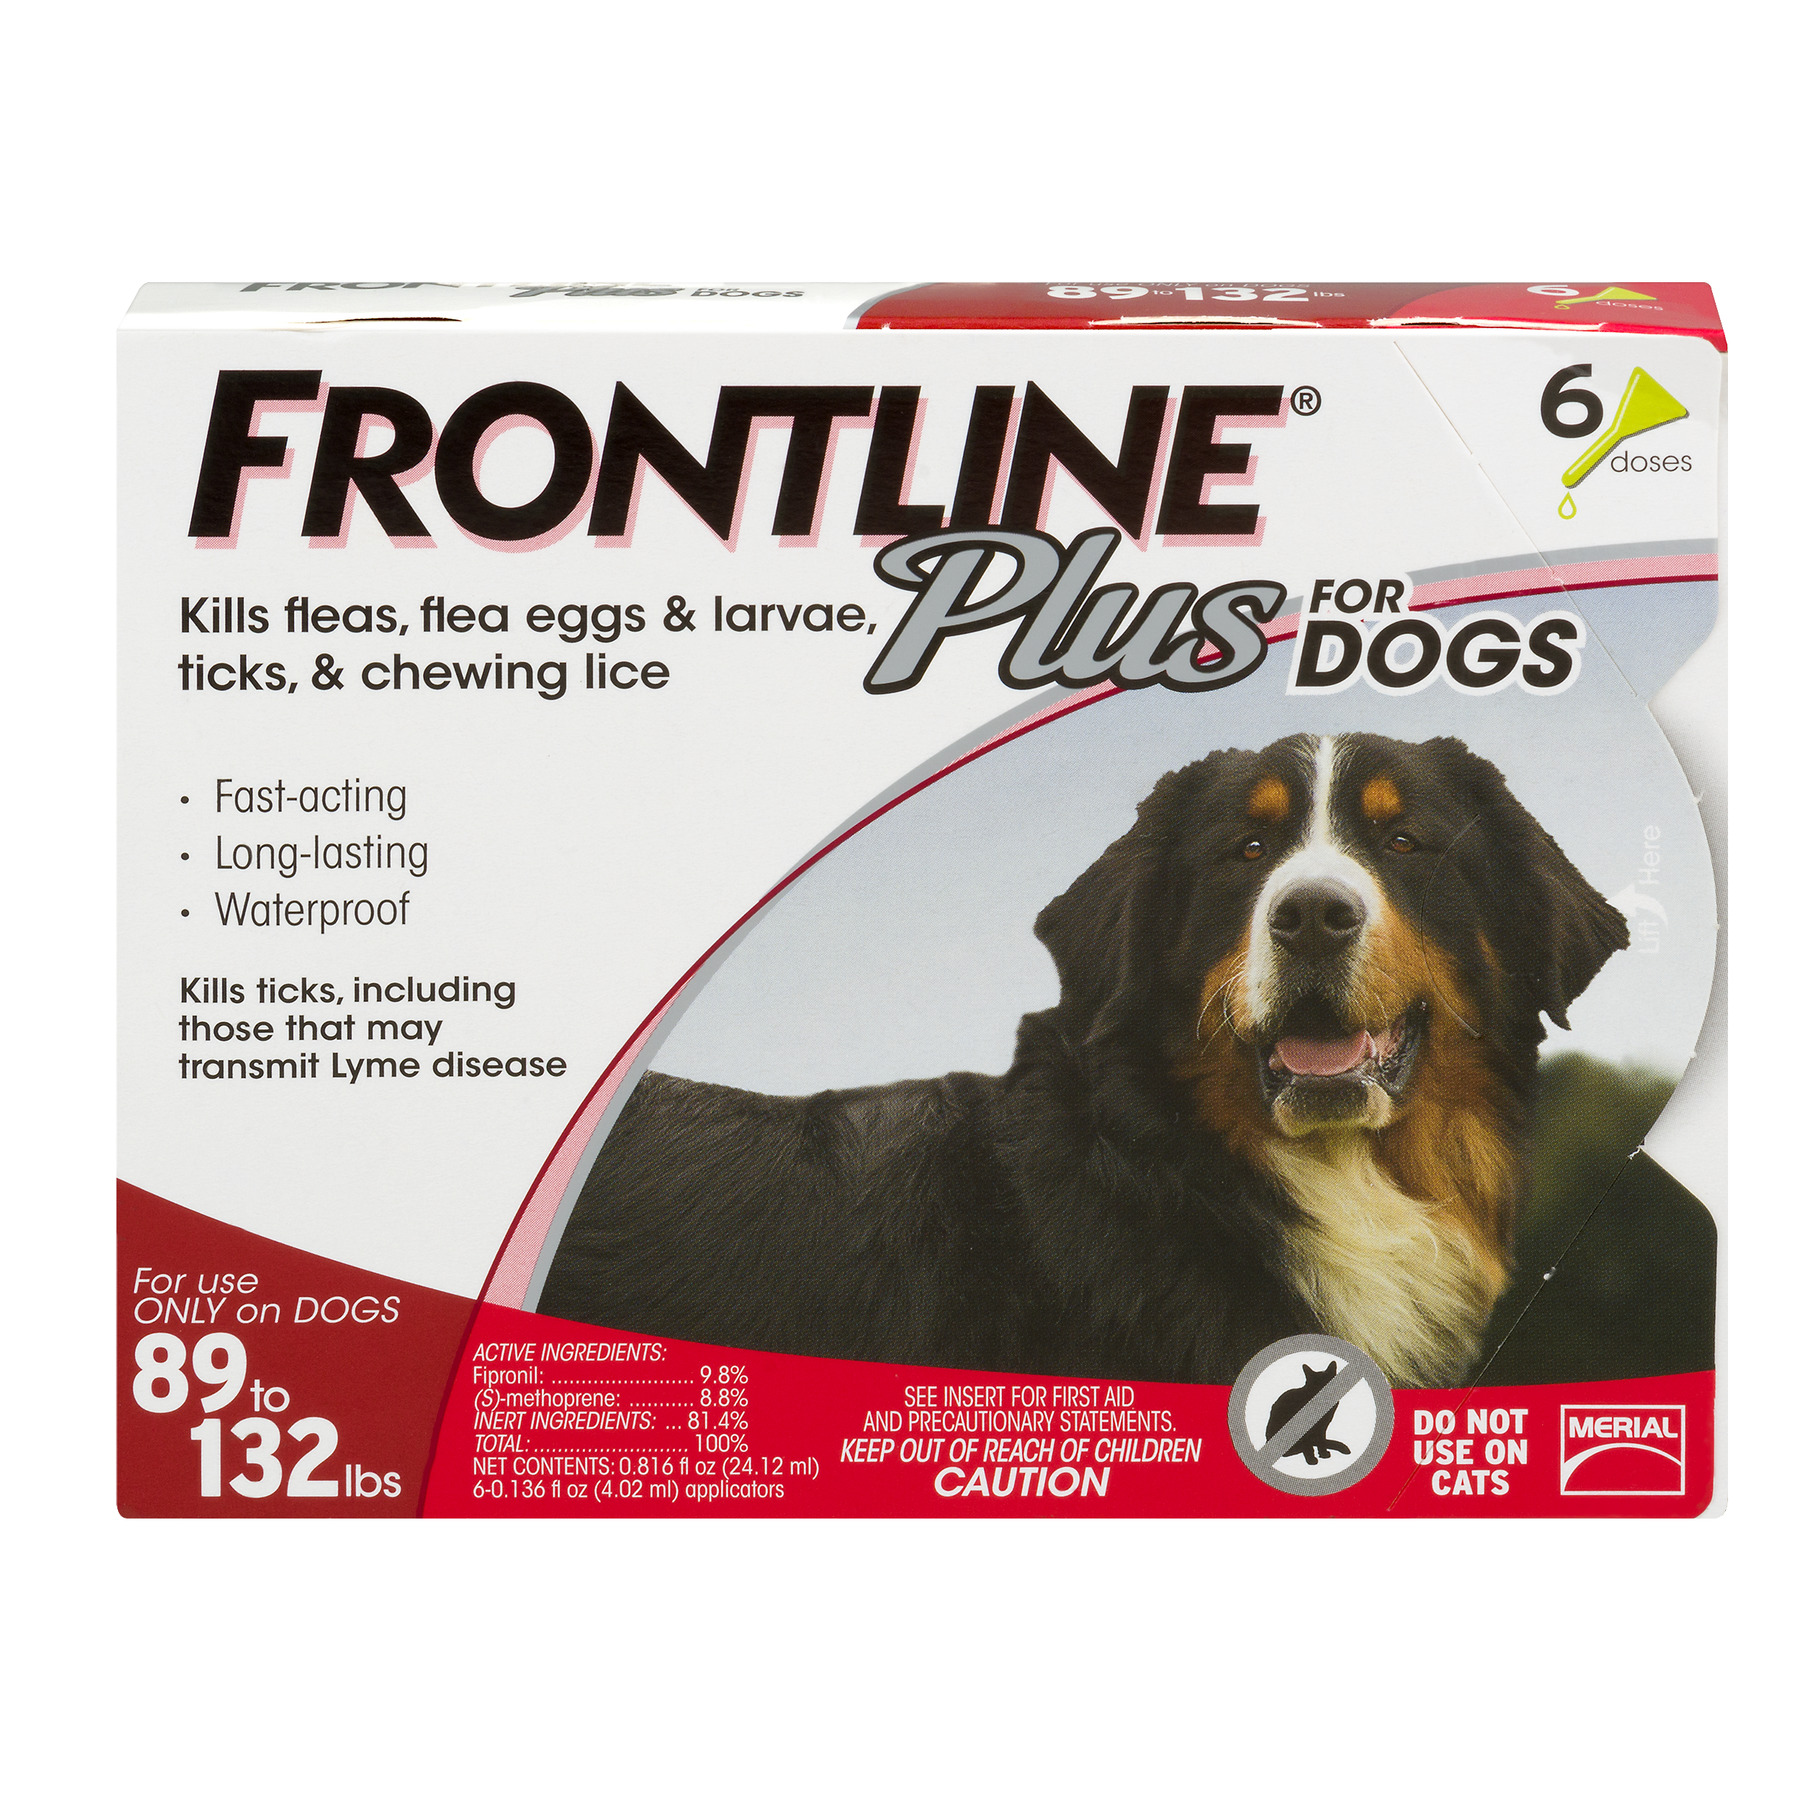 Frontline Plus Flea and Tick Treatment for Extra-Large Dogs, 6 Monthly Doses